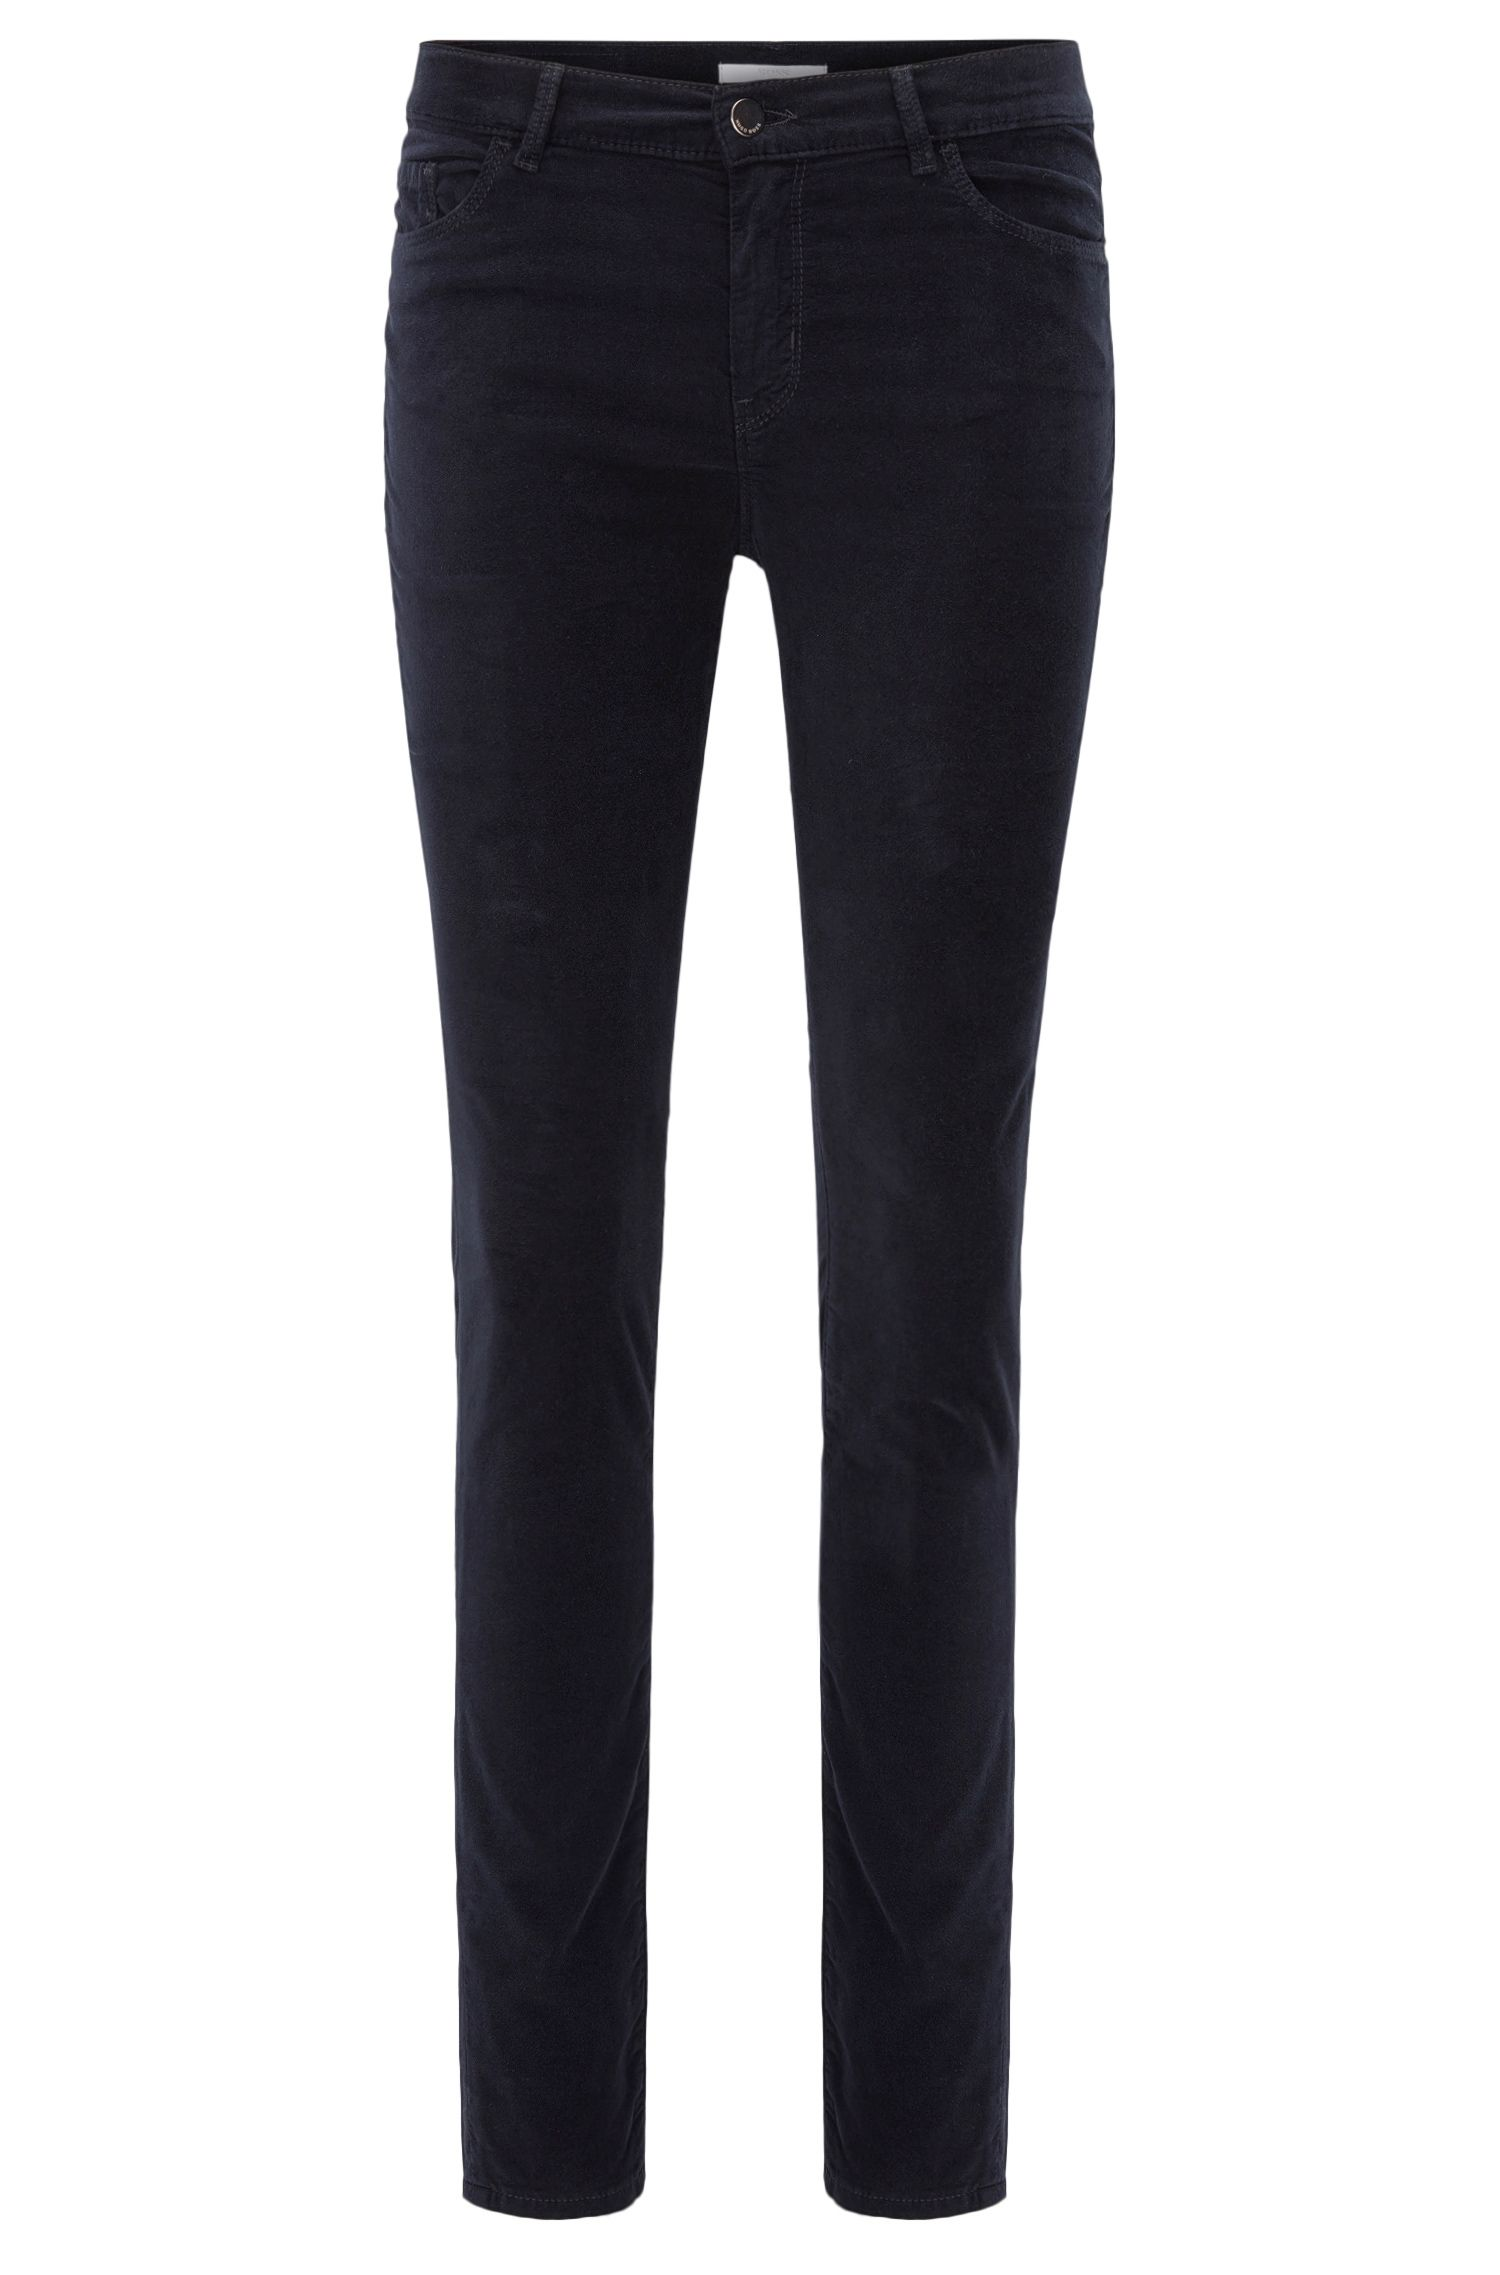 Jeans Slim Fit en velours italien stretch